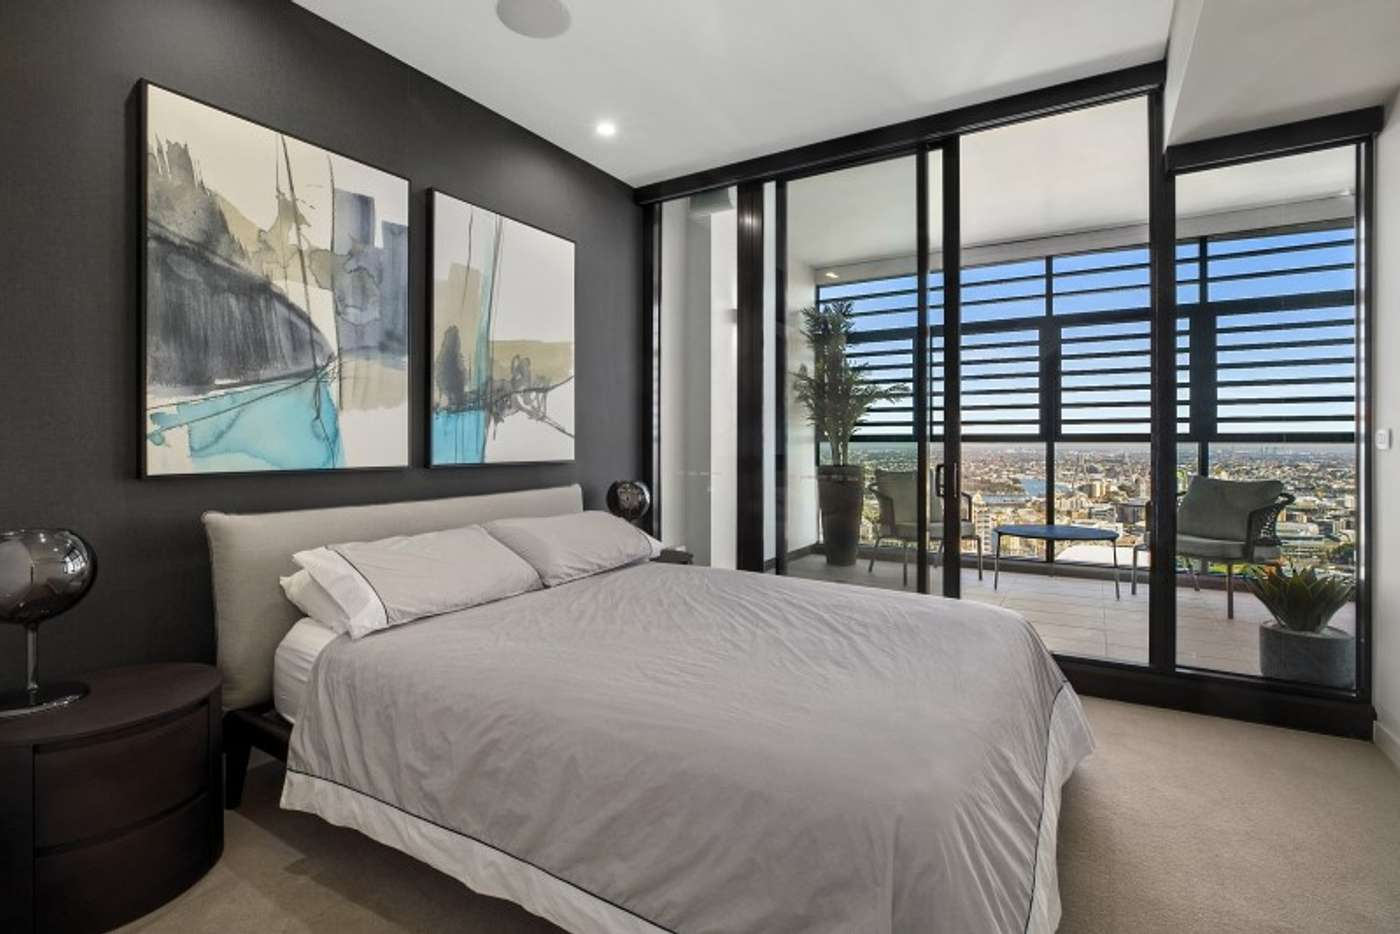 Sixth view of Homely apartment listing, 38 York St, Sydney NSW 2000